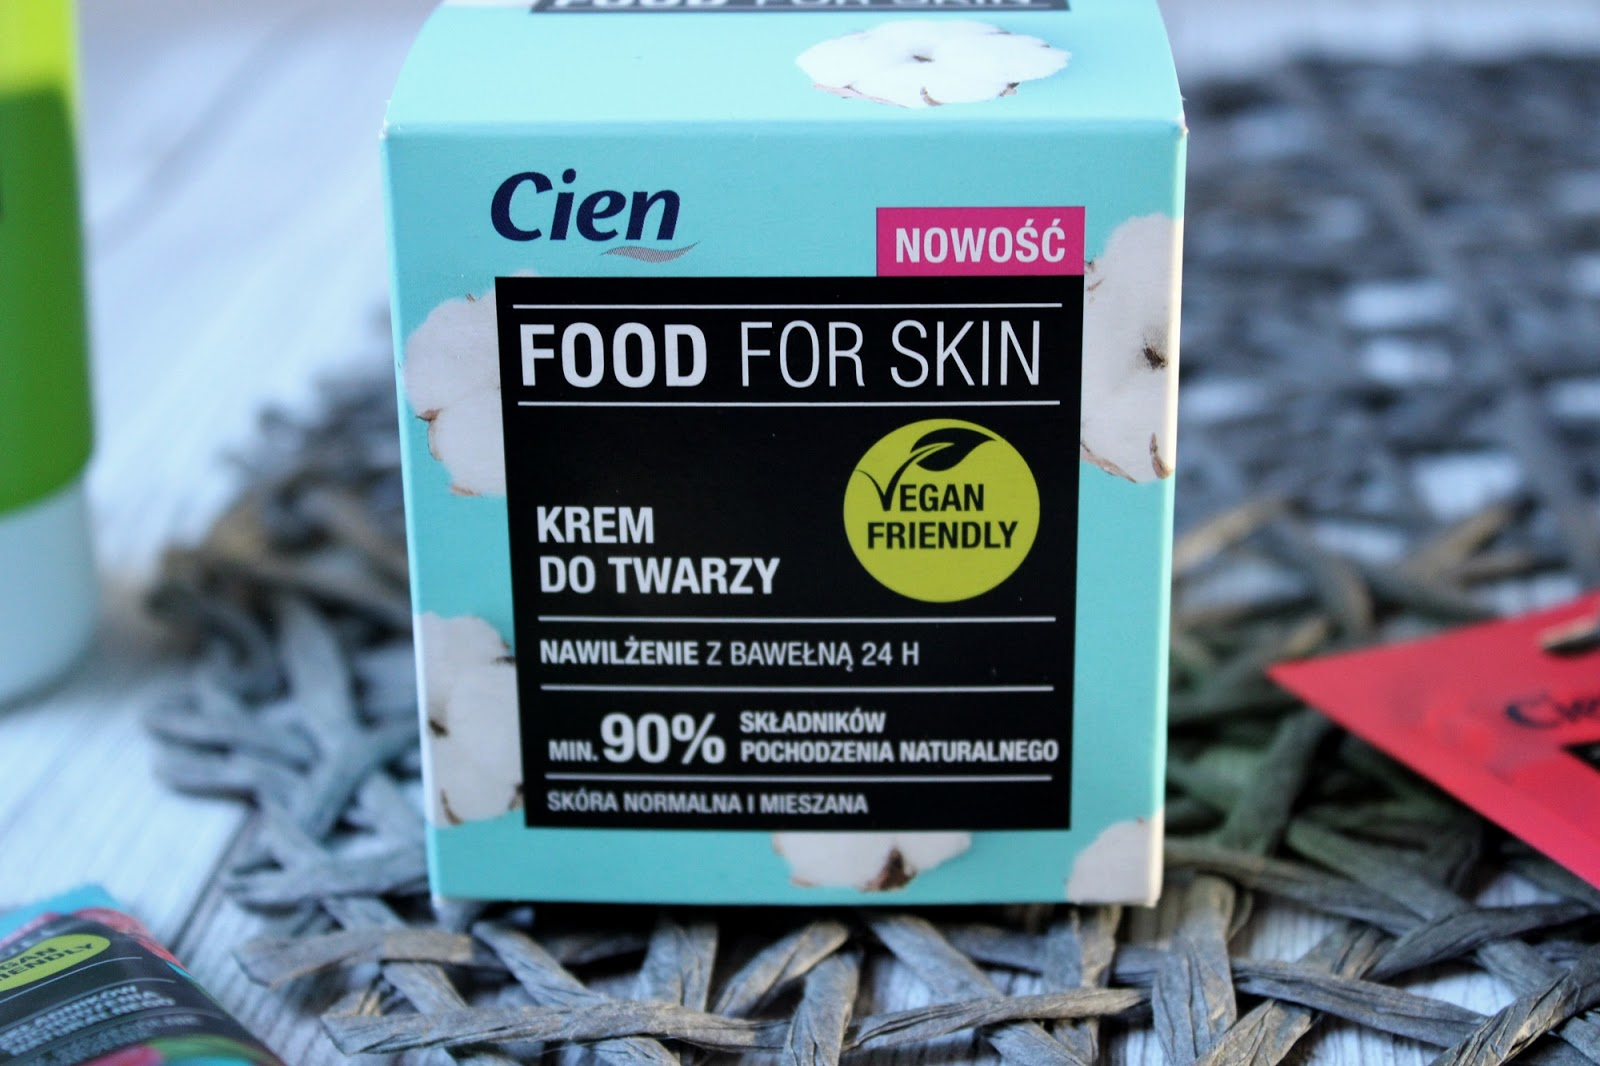 Food for skin Cien LIDL